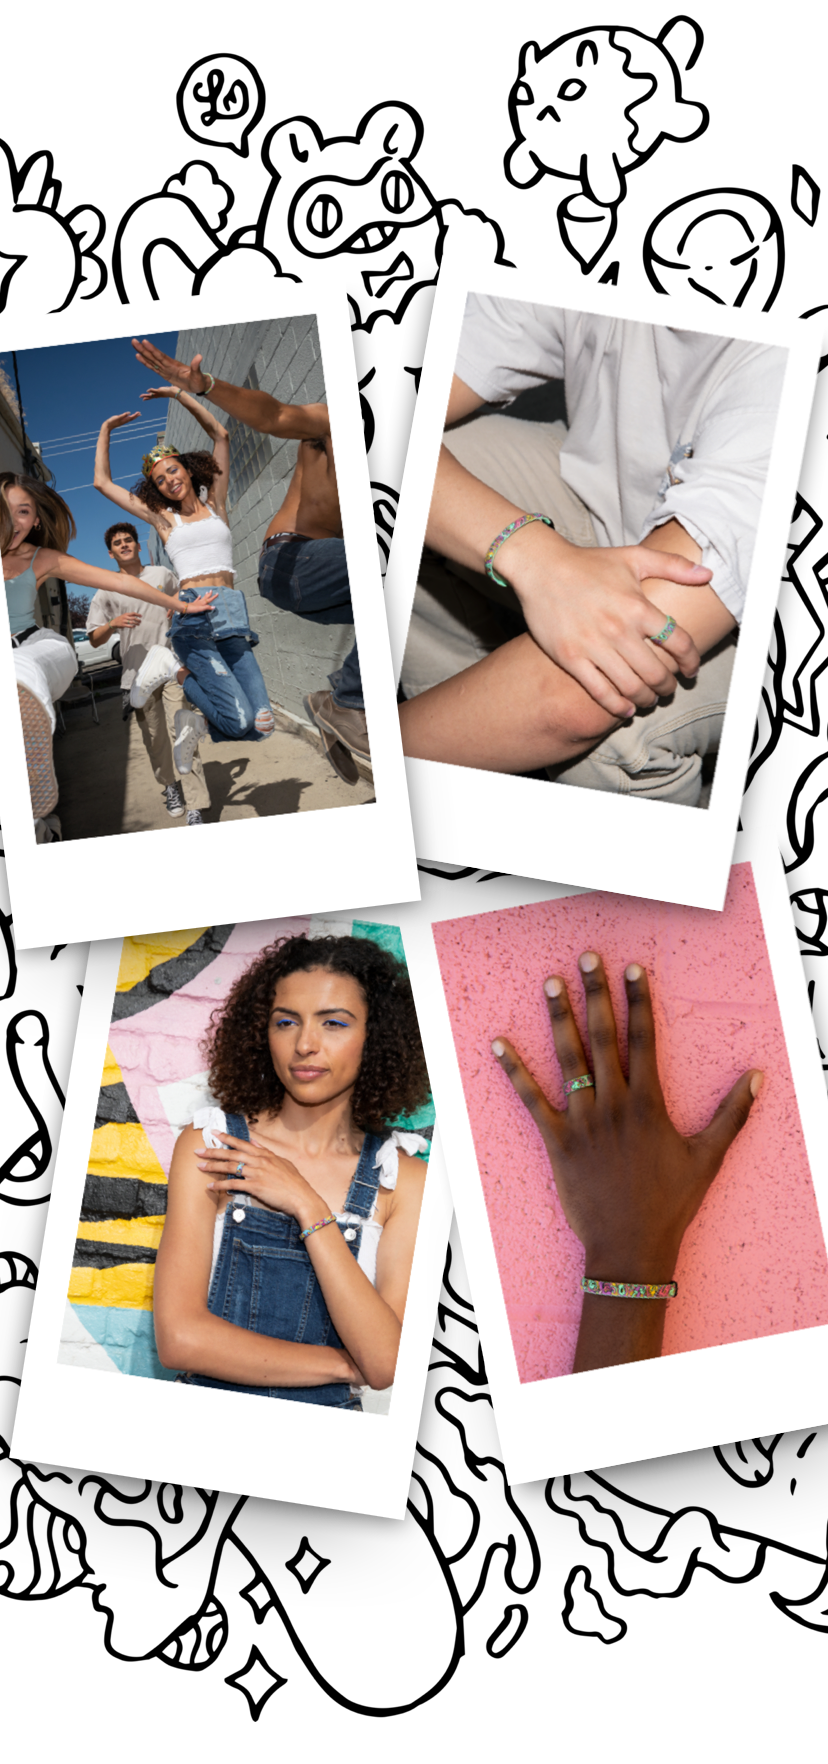 4 polaroids of people at activites wearing enso exclusive rings and bracelets